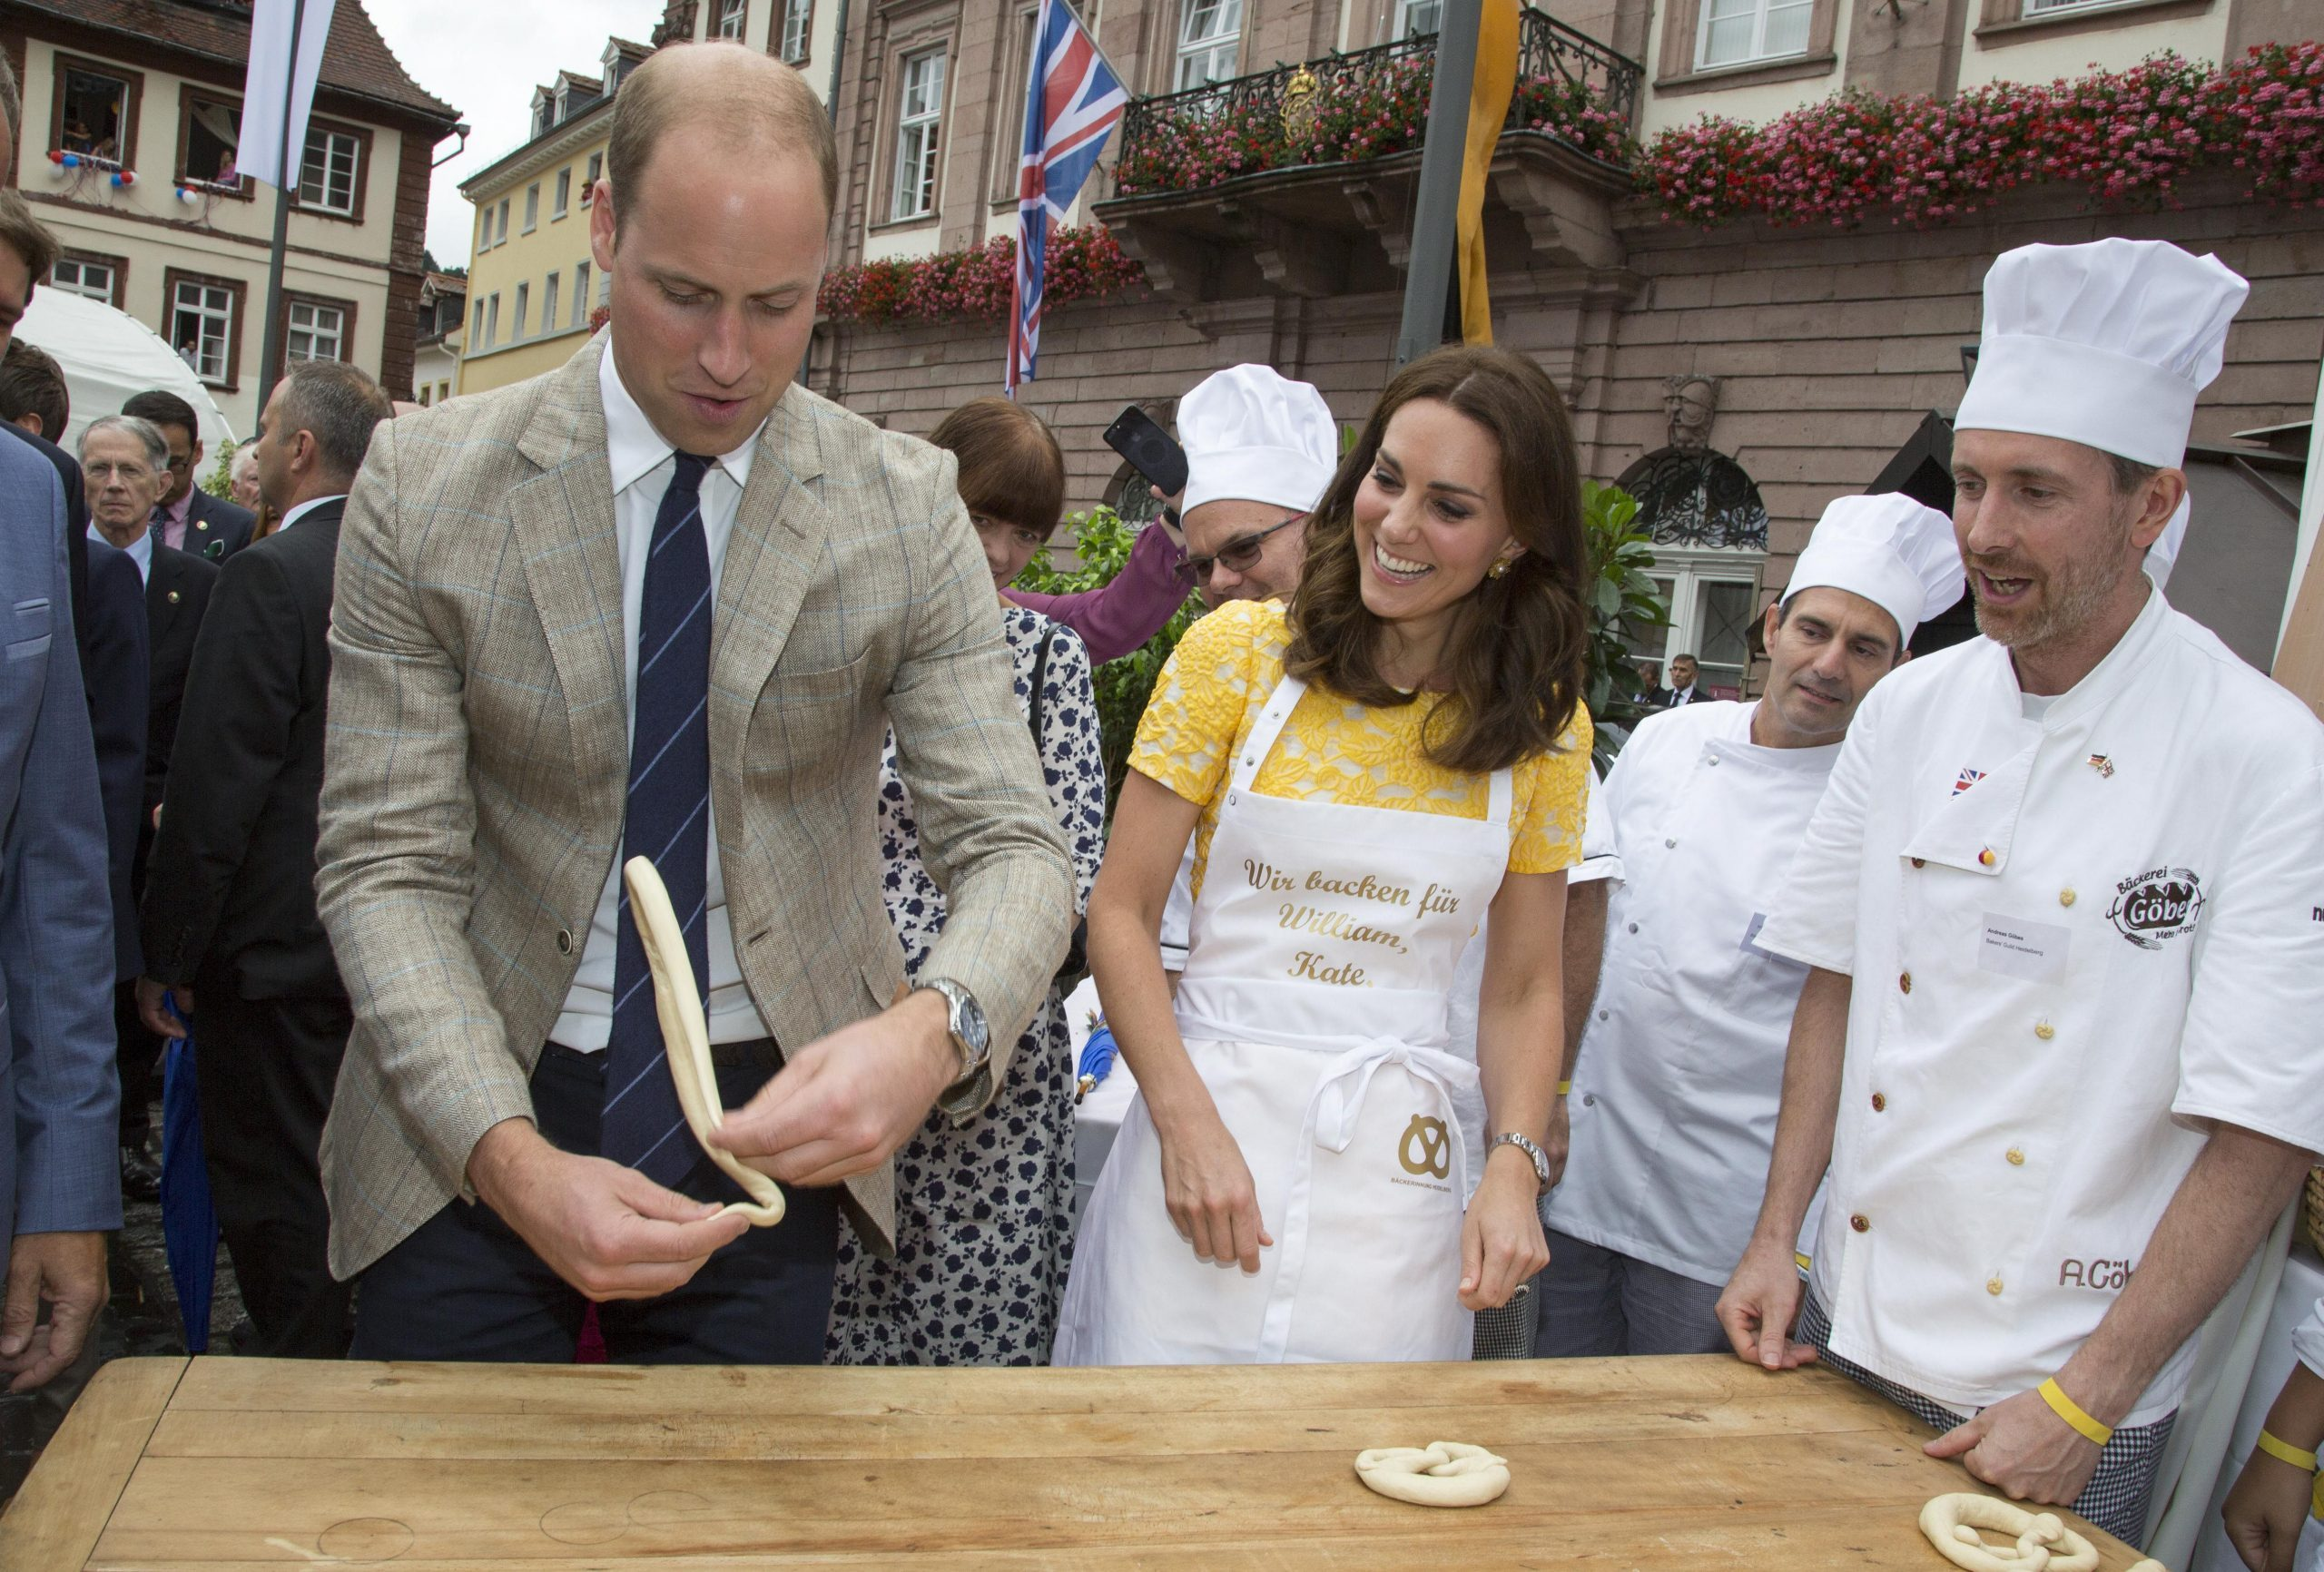 Prince William and Catherine Duchess of Cambridge visit to Germany - 20 Jul 2017